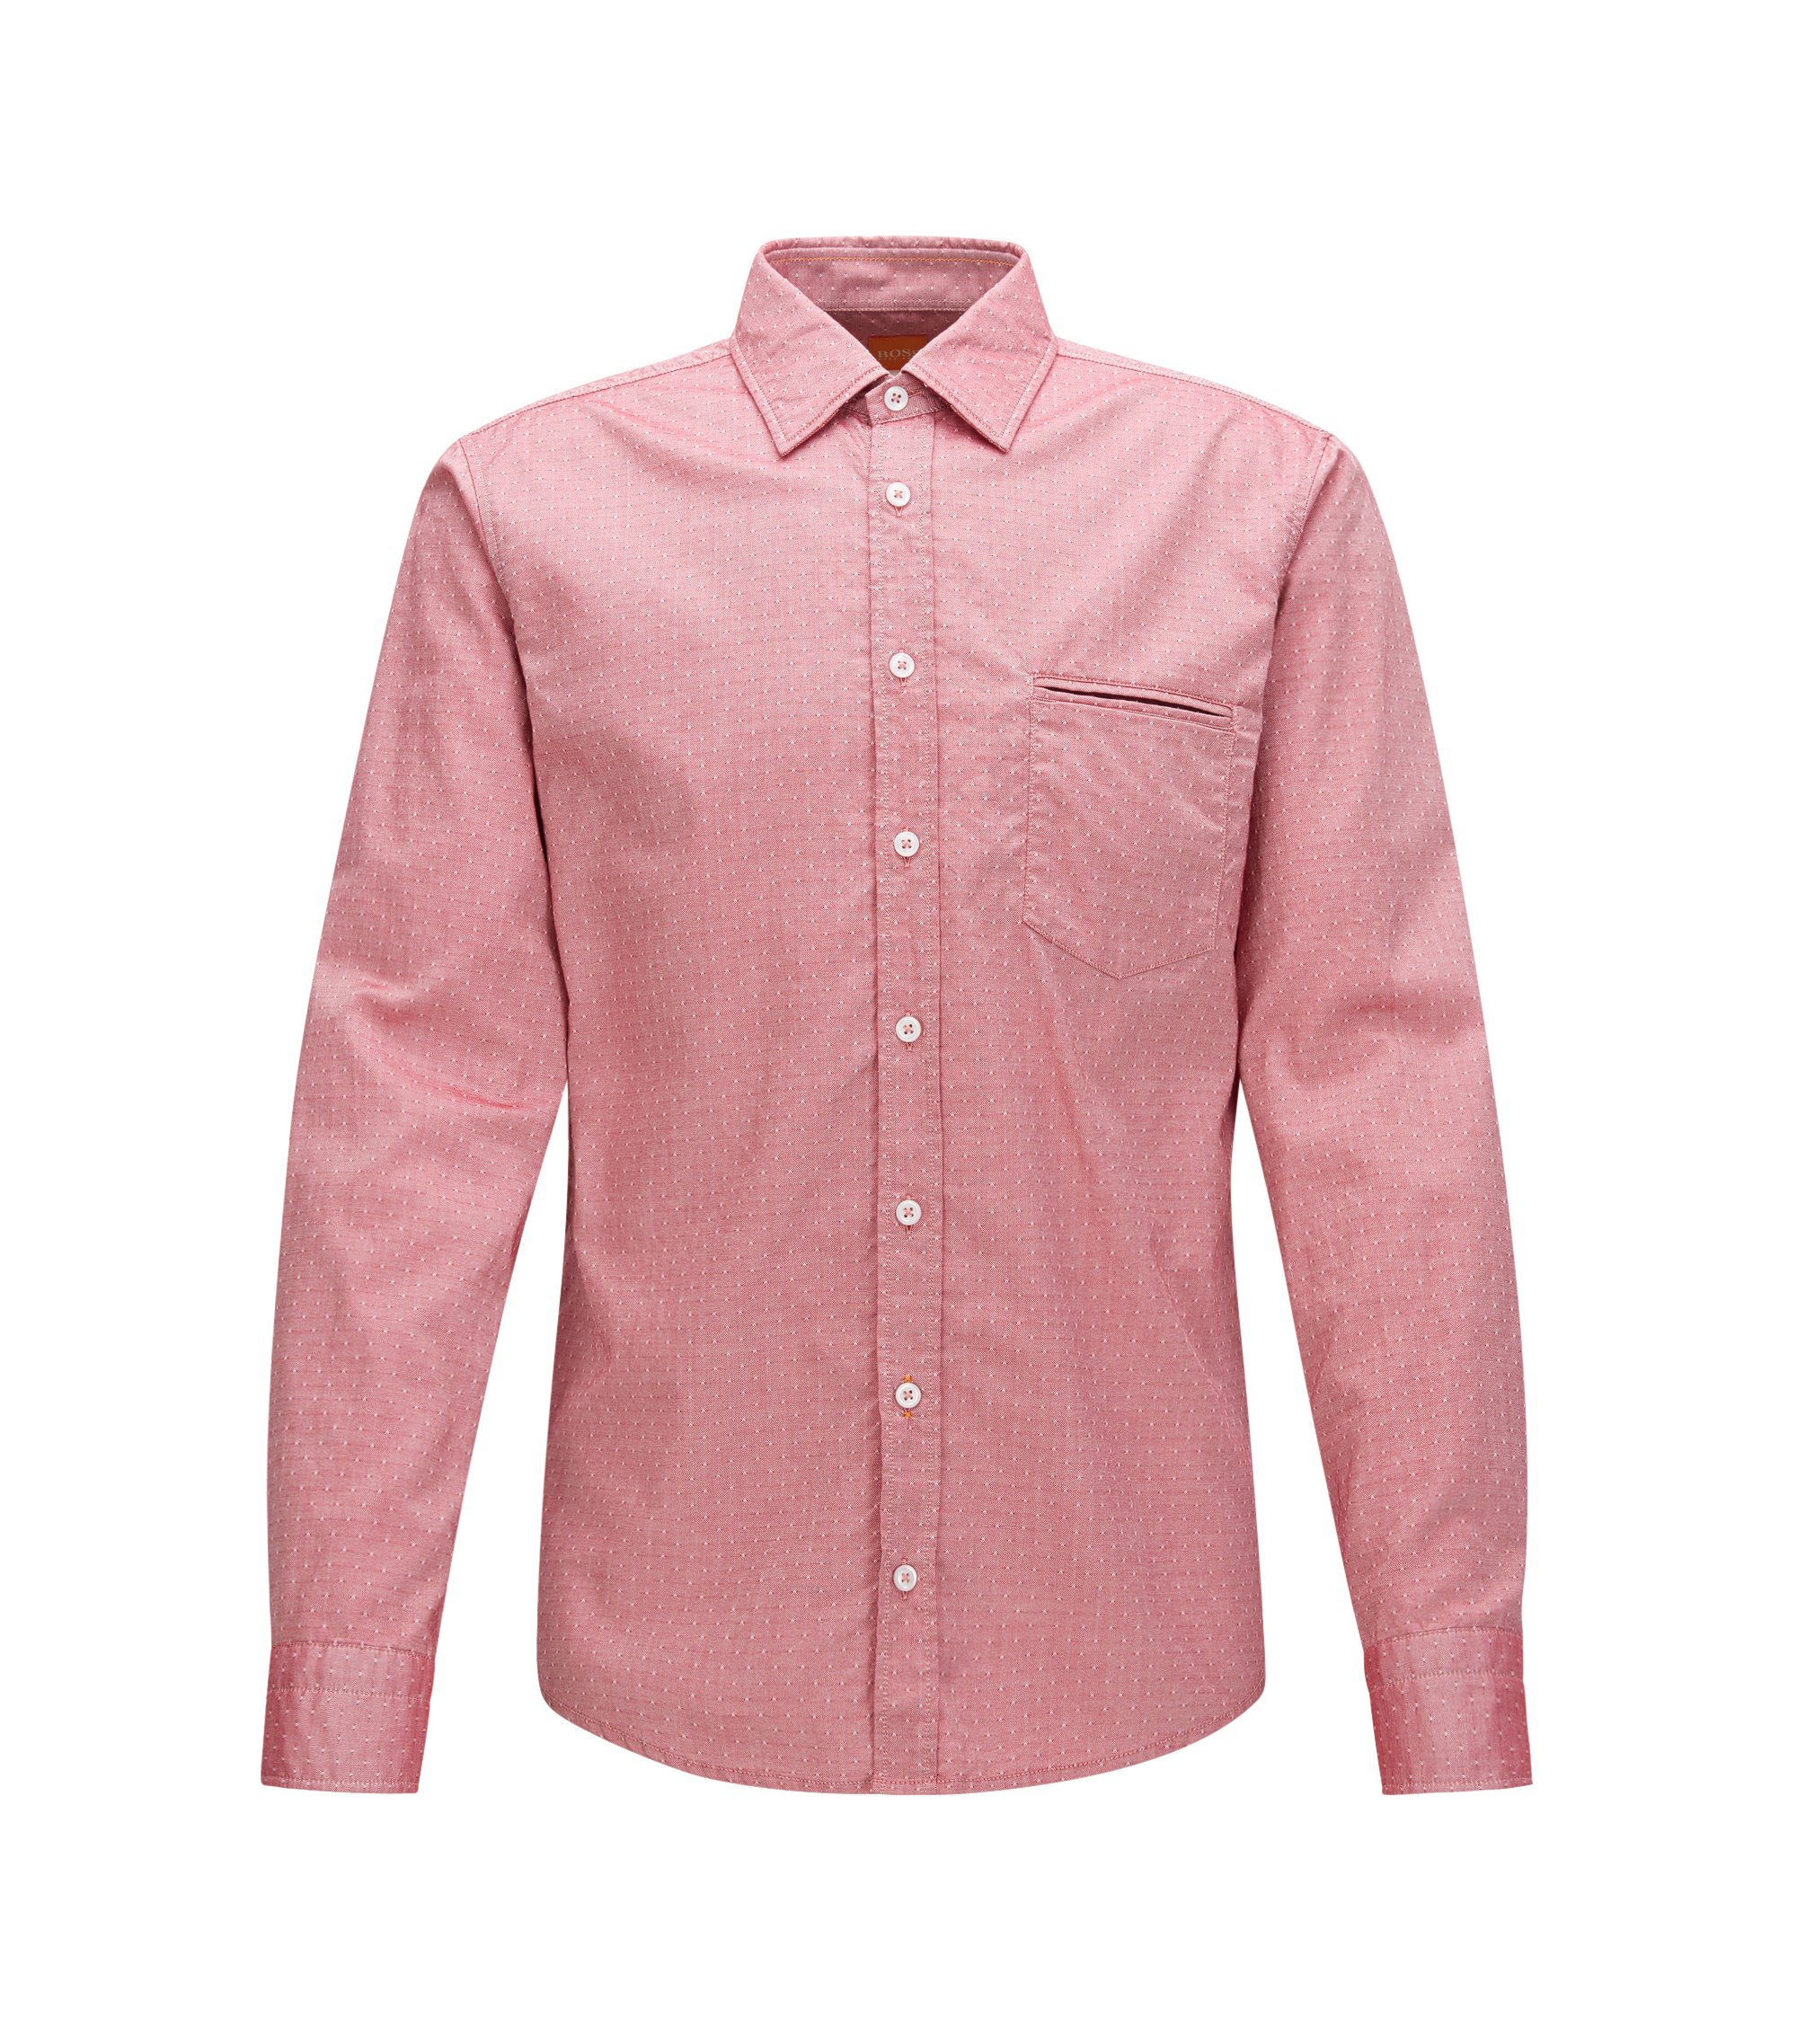 Cotton Button Down Shirt, Regular Fit | Classy, Red